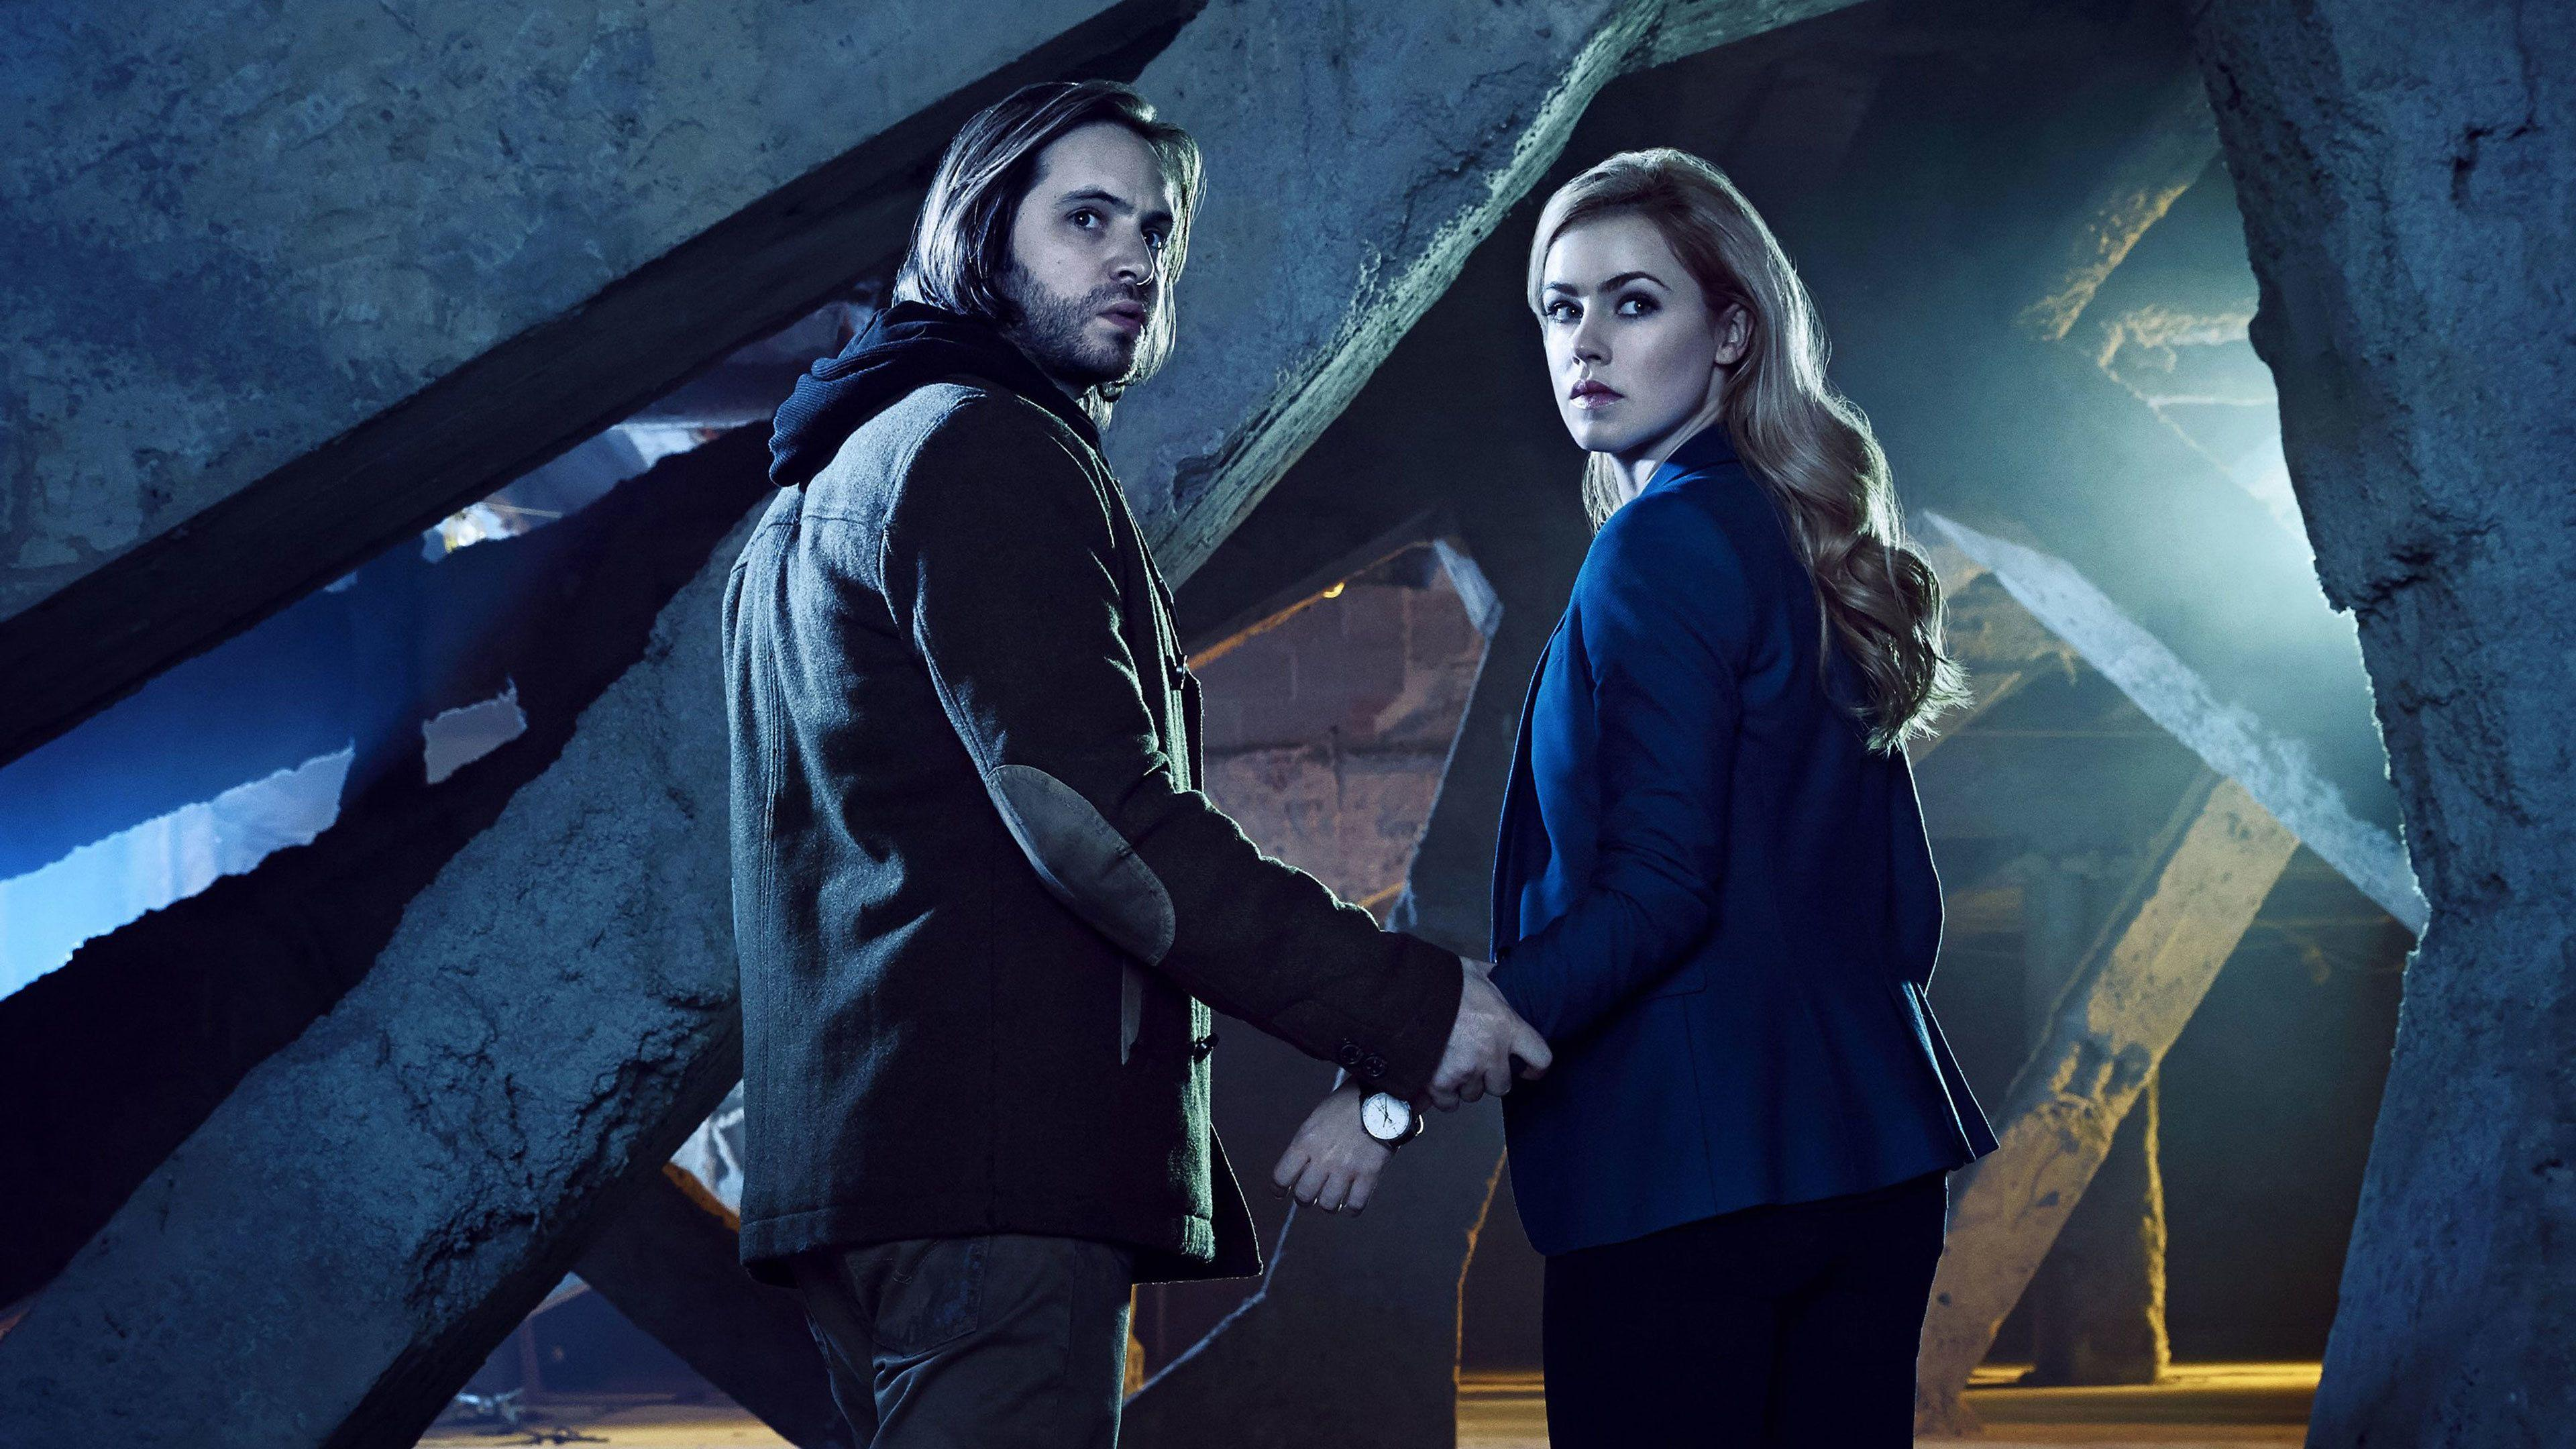 12 Monkeys Wallpapers, Pictures, Images